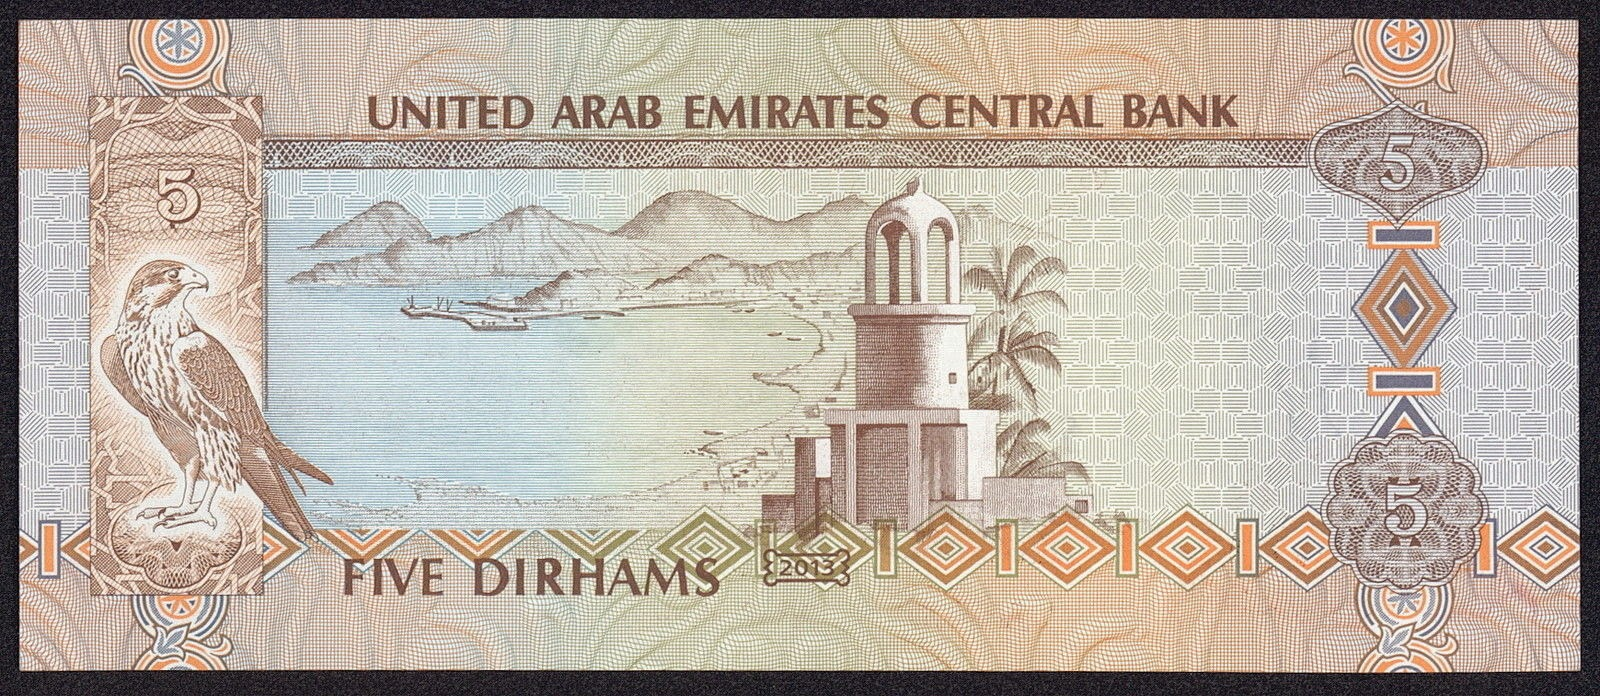 United Arab Emirates Currency 5 Dirhams banknote 1976 Bay of Khorfakkan